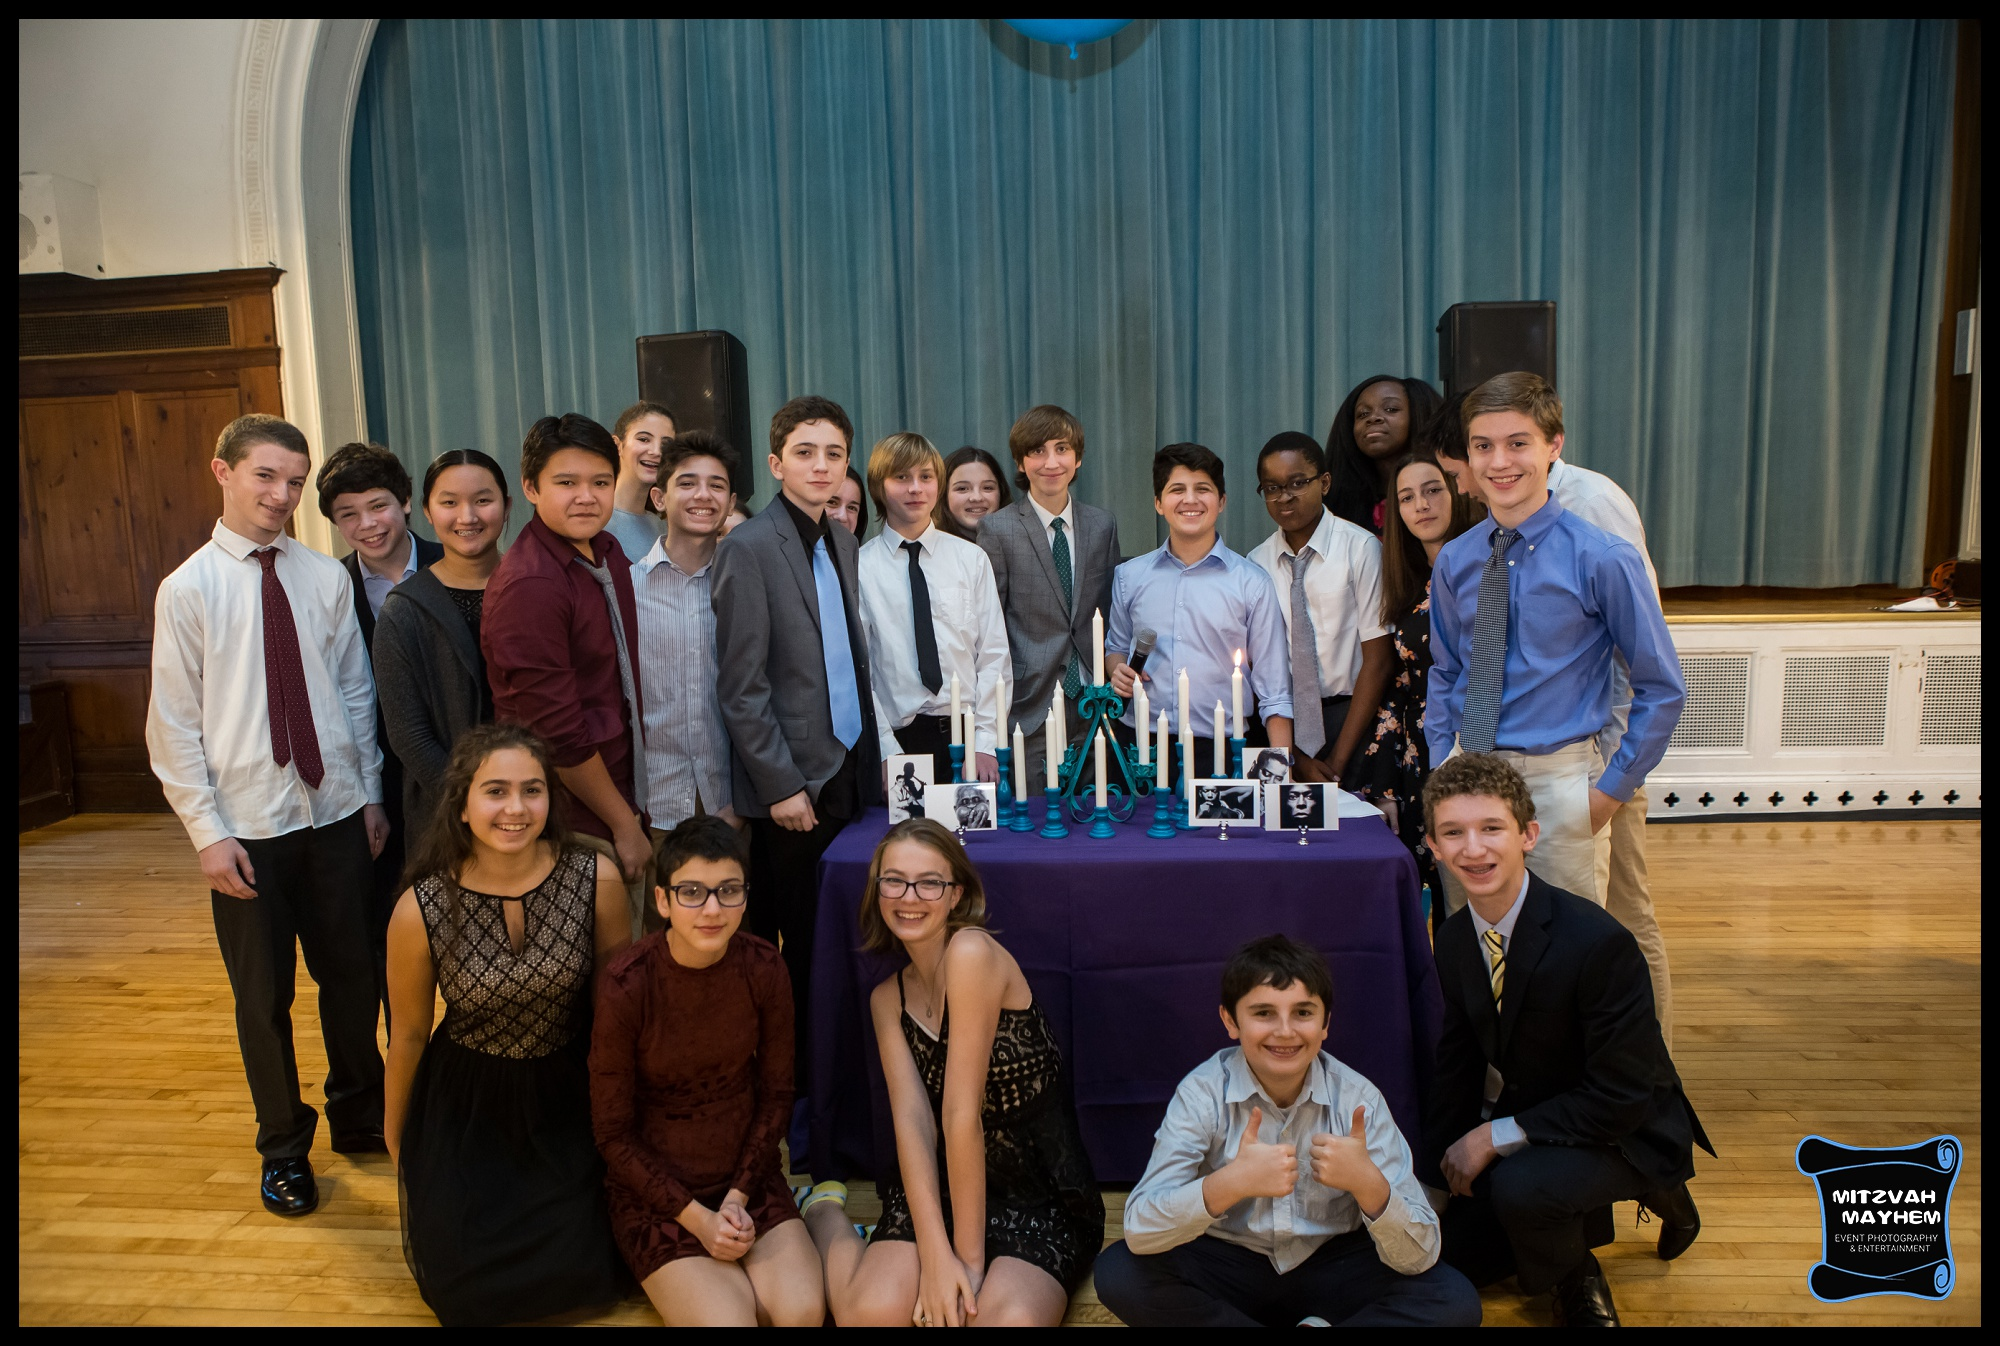 congregation-beth-el-south-orange-bar-mitzvah-5807.jpg